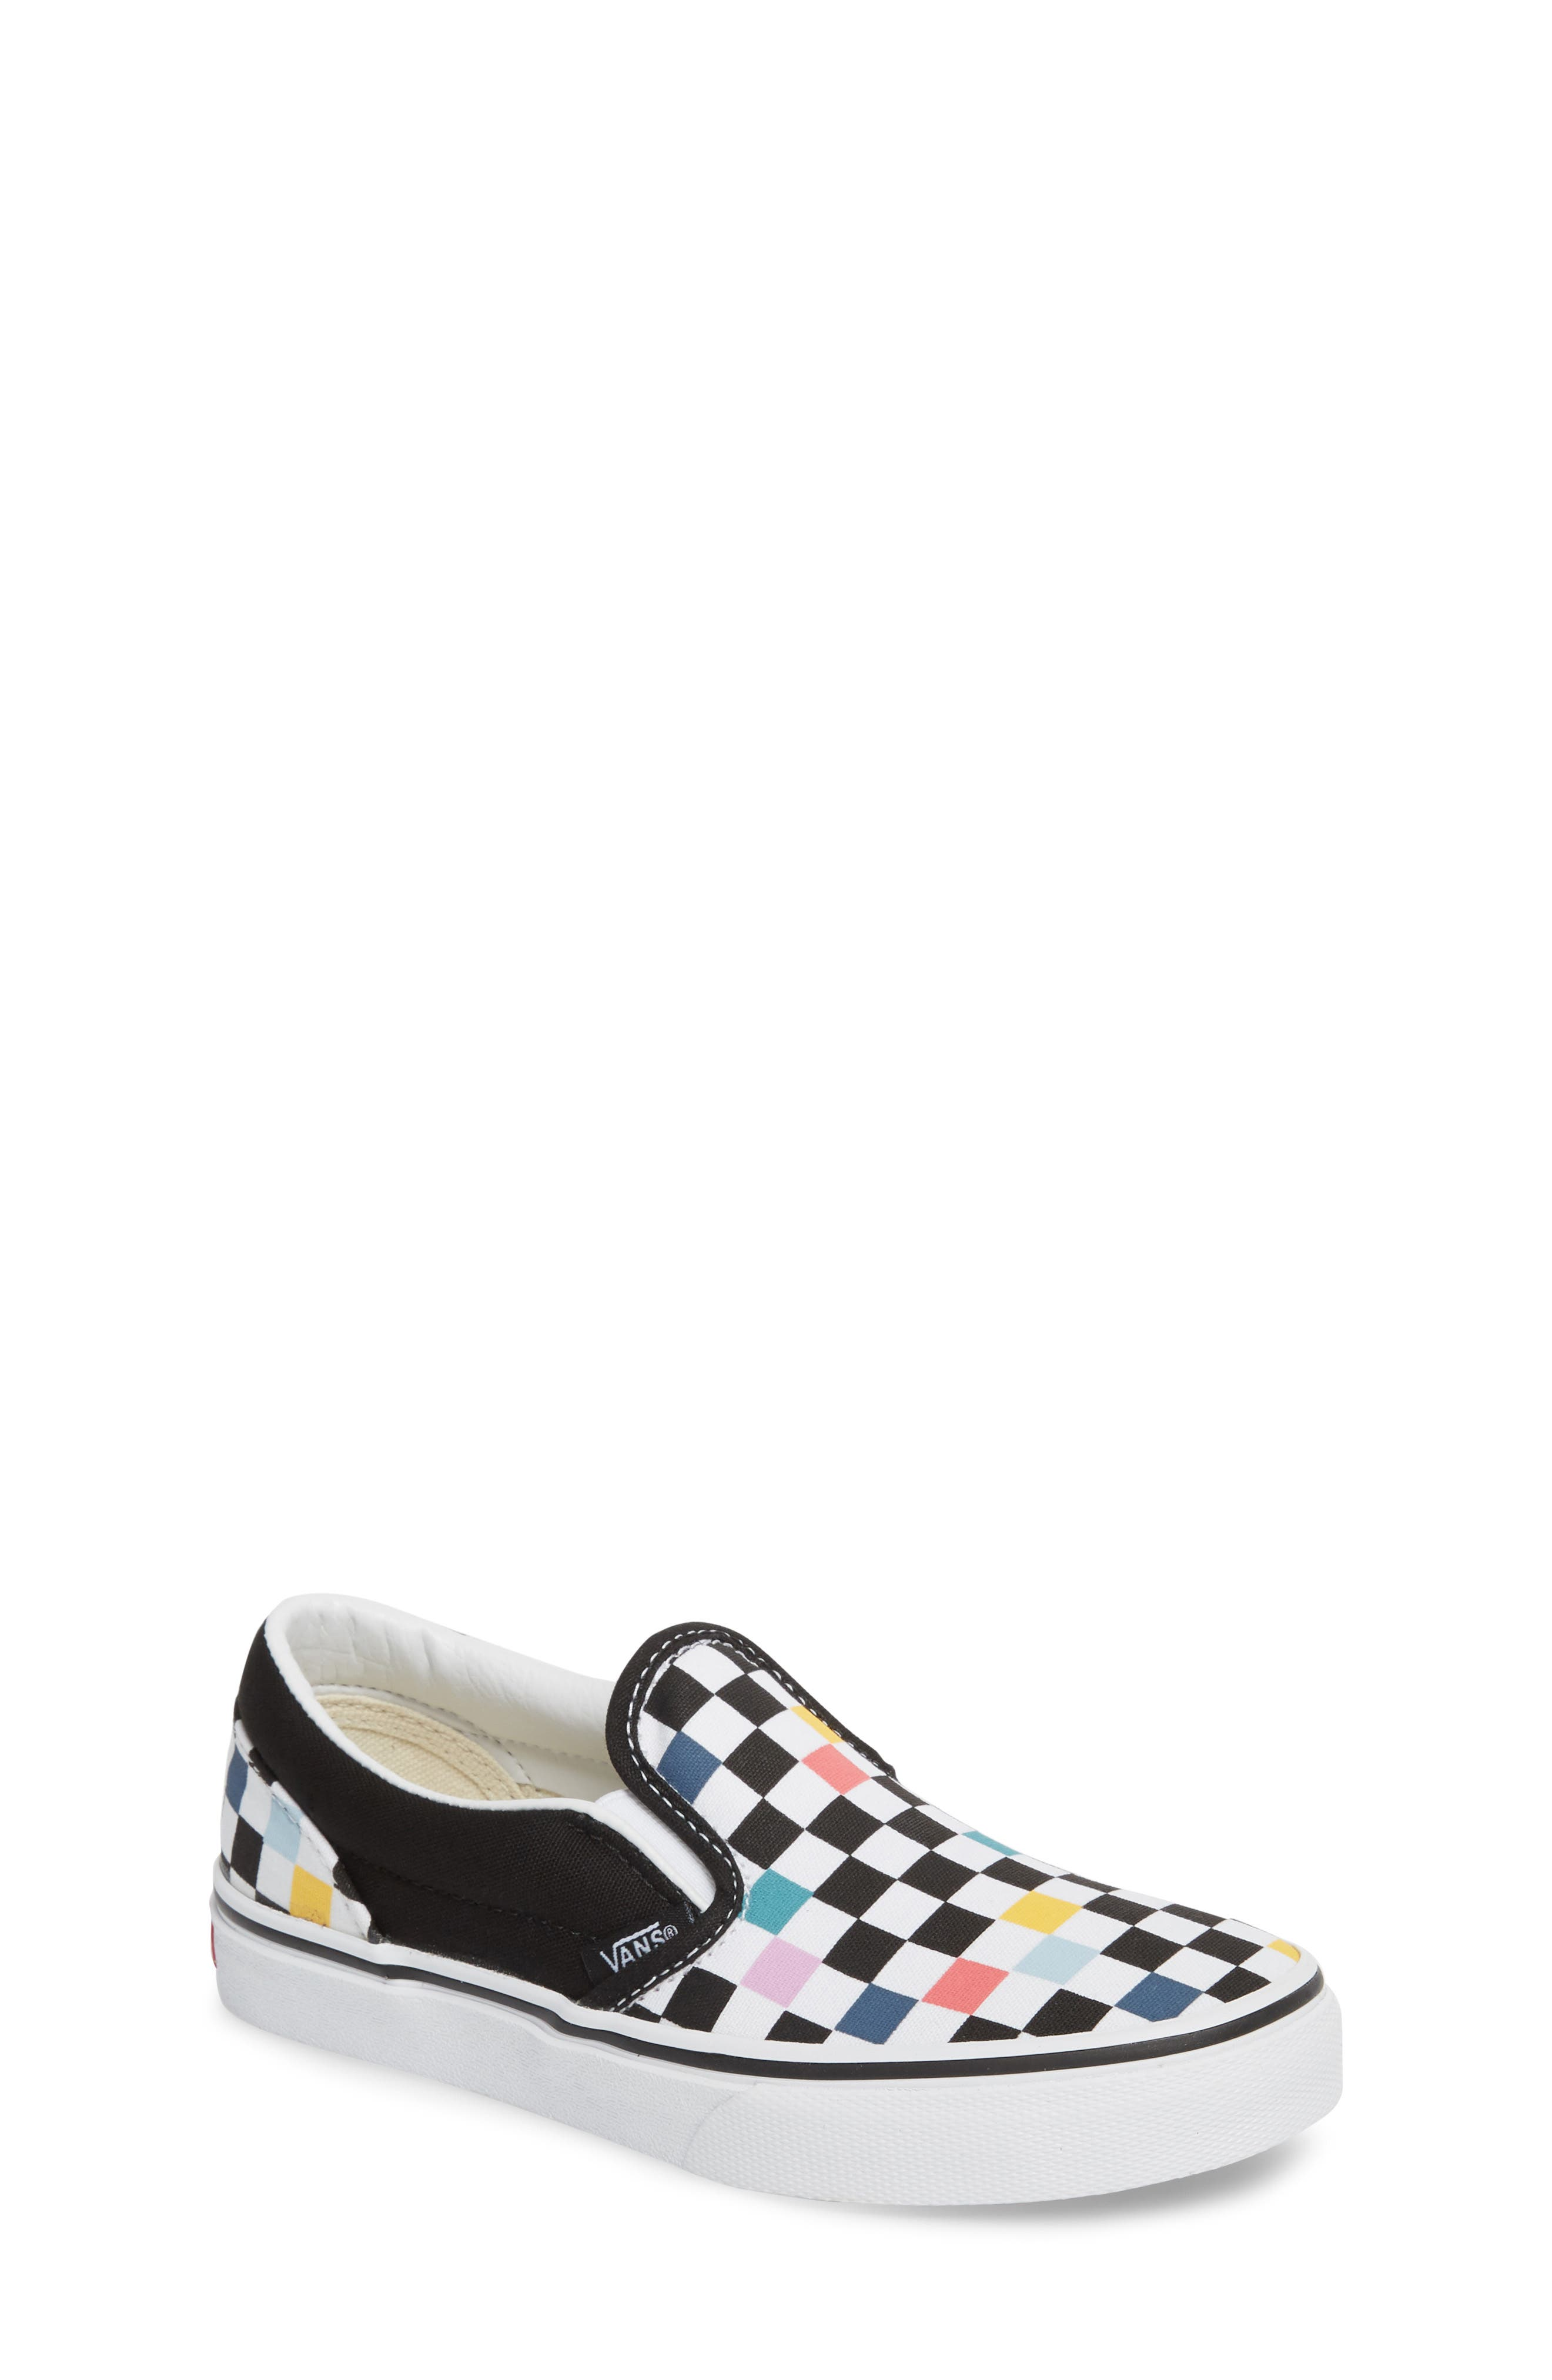 Vans Party Check Slip-On Sneaker (Baby, Walker, Toddler, Little Kid & Big Kid)